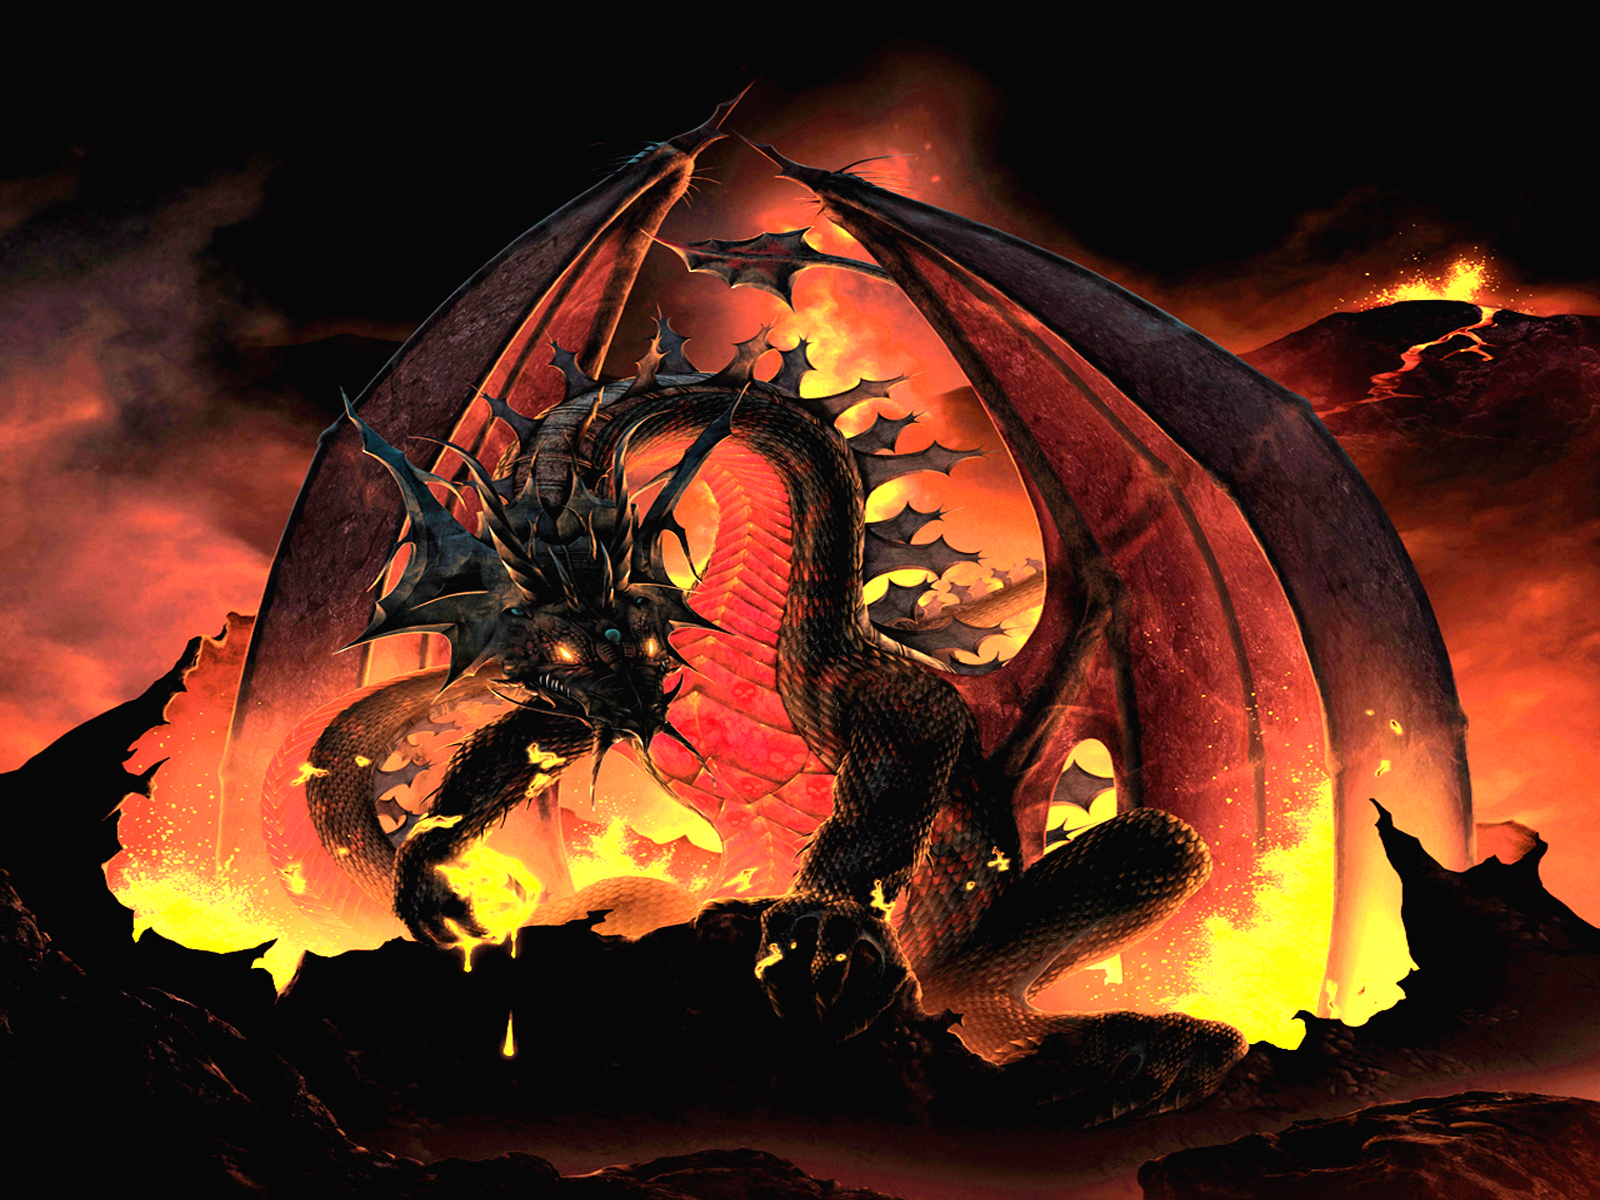 Fantasy - Dragon  - Awesome! Wallpaper